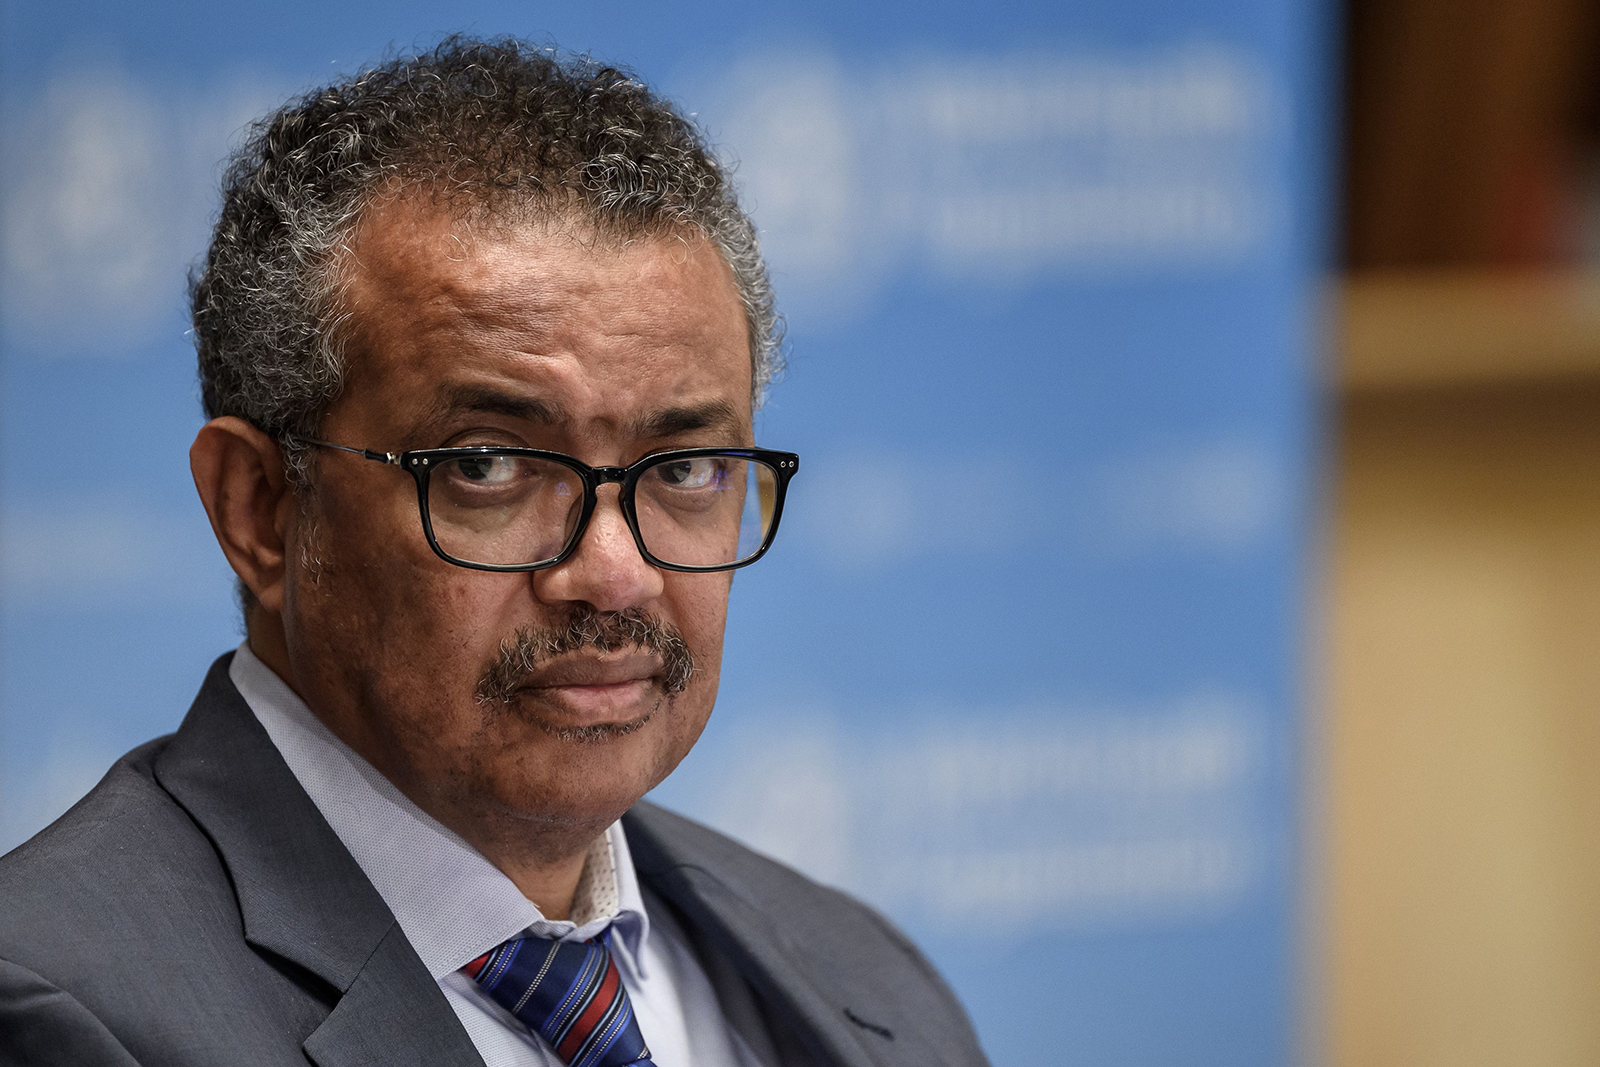 WHO Director-General Tedros Adhanom Ghebreyesus attends a press conference in Geneva on July 3.